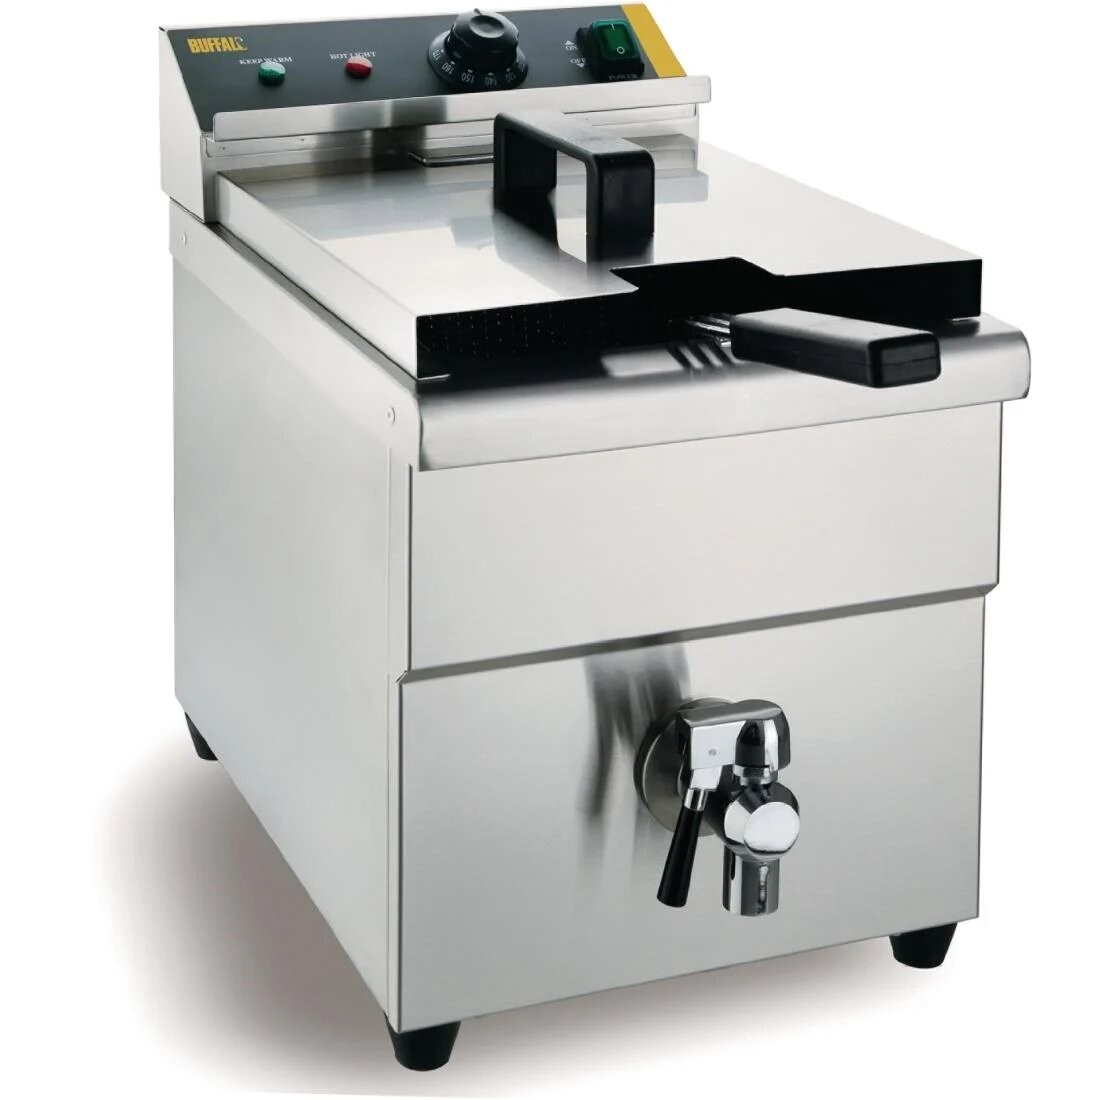 Buffalo CP793 Single Tank Countertop Induction Fryer